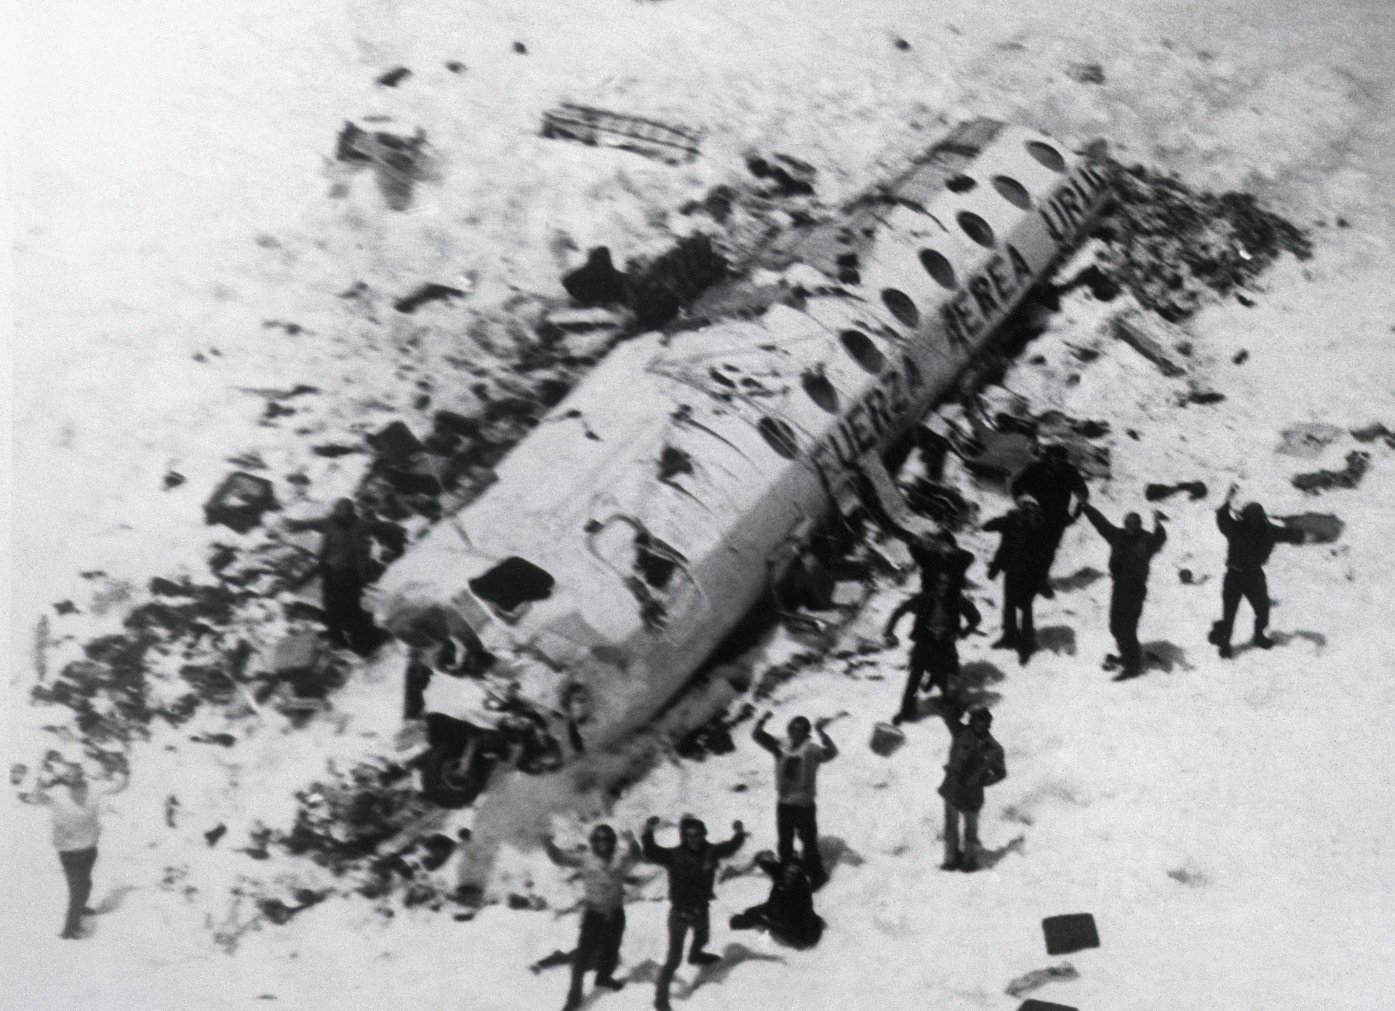 1972-andes-plane-crash-site-and-survivors1.jpg